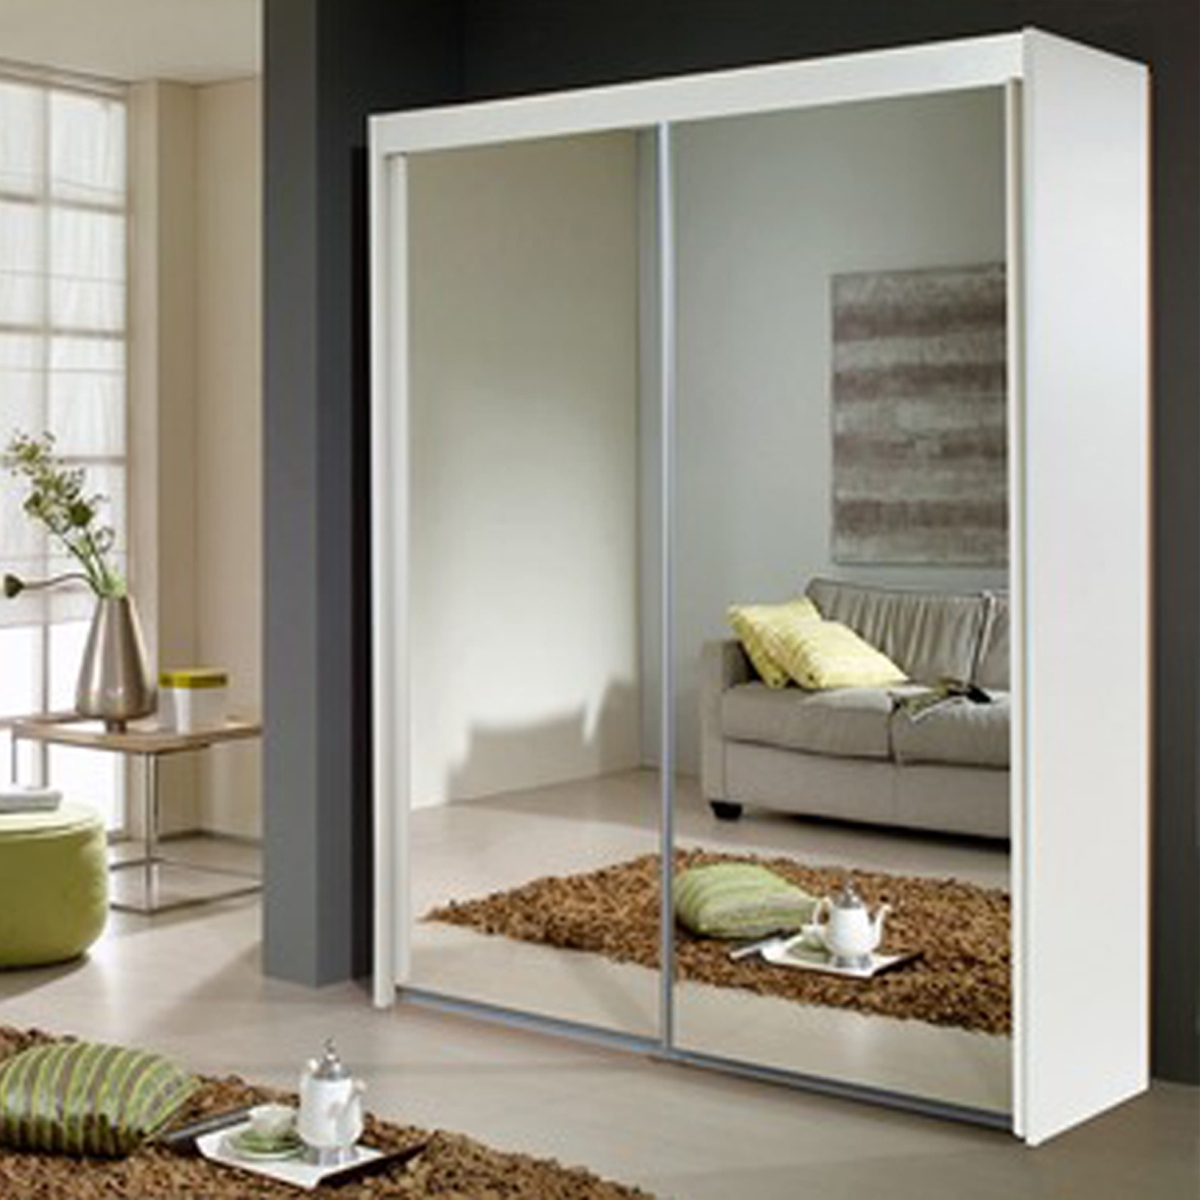 Sliding Door Mirrored Wardrobe From The House Of Reeves Croydon For Newest Cheap Mirrored Wardrobes (View 11 of 15)